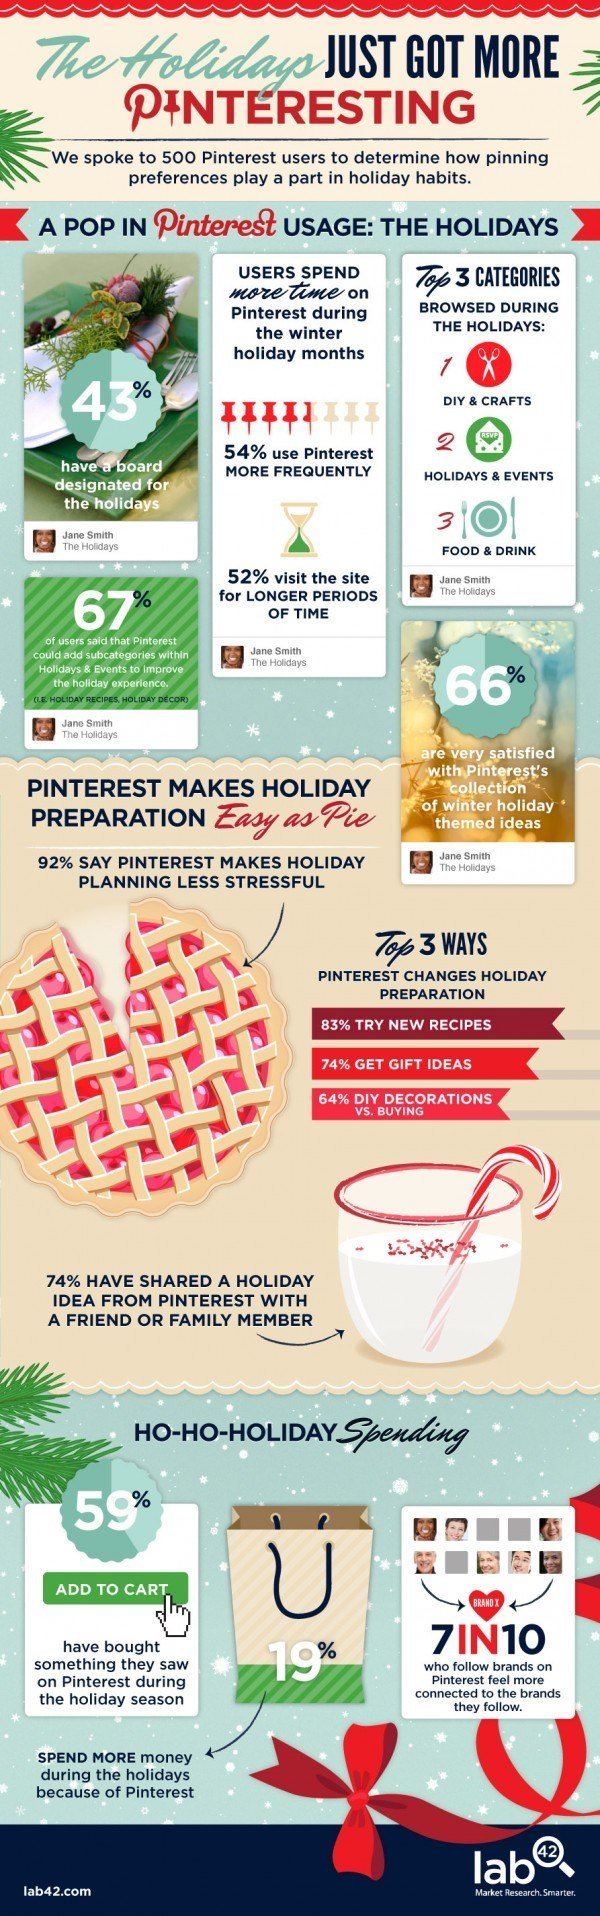 Lab42-Infographic-Pinterest-Holiday-e1386706870283